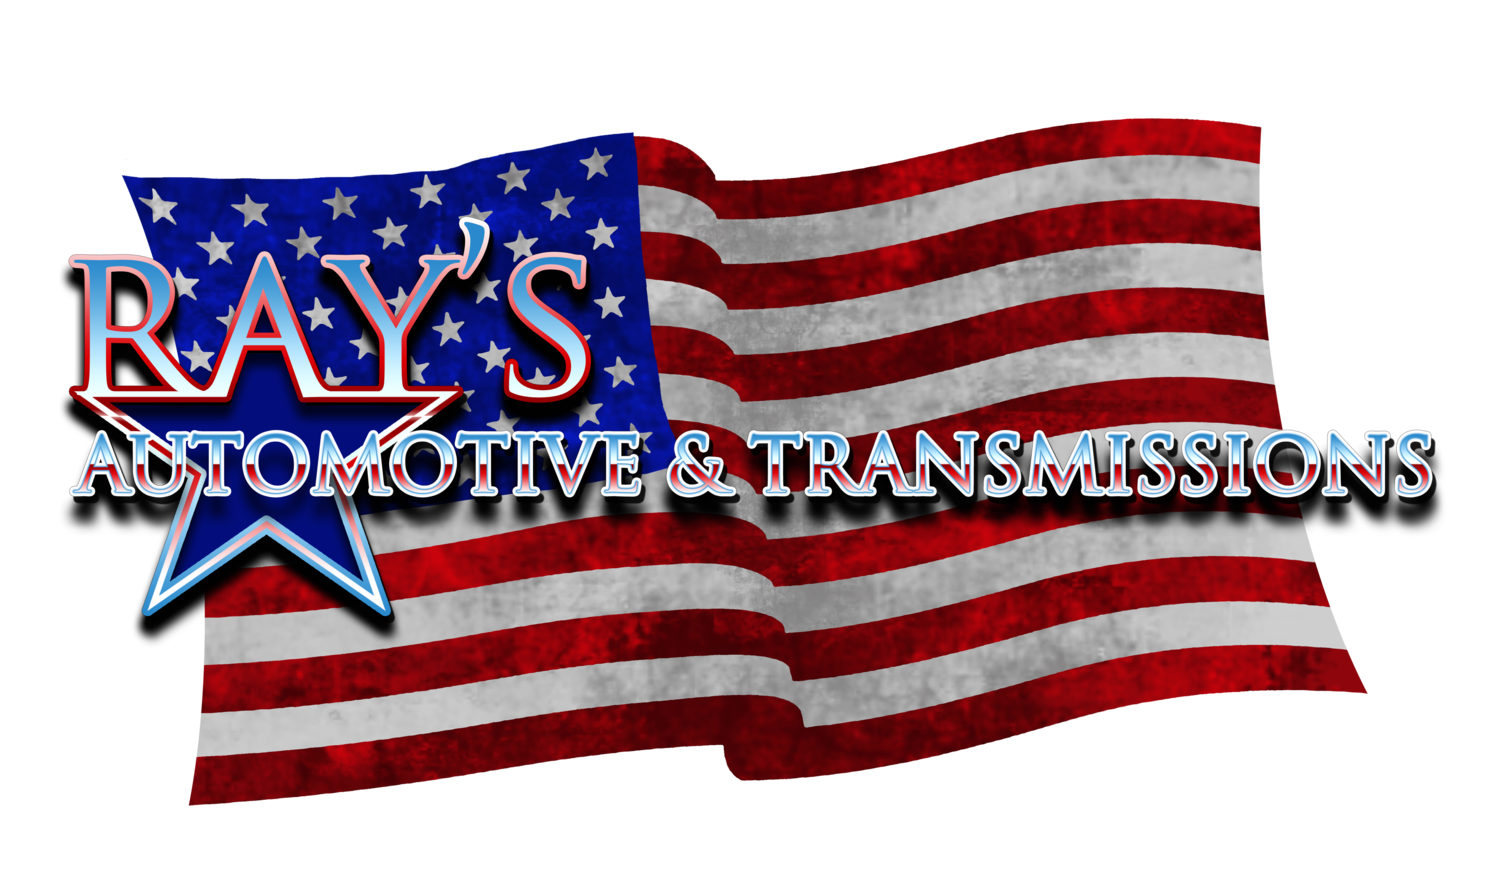 Ray's Automotive & Transmission